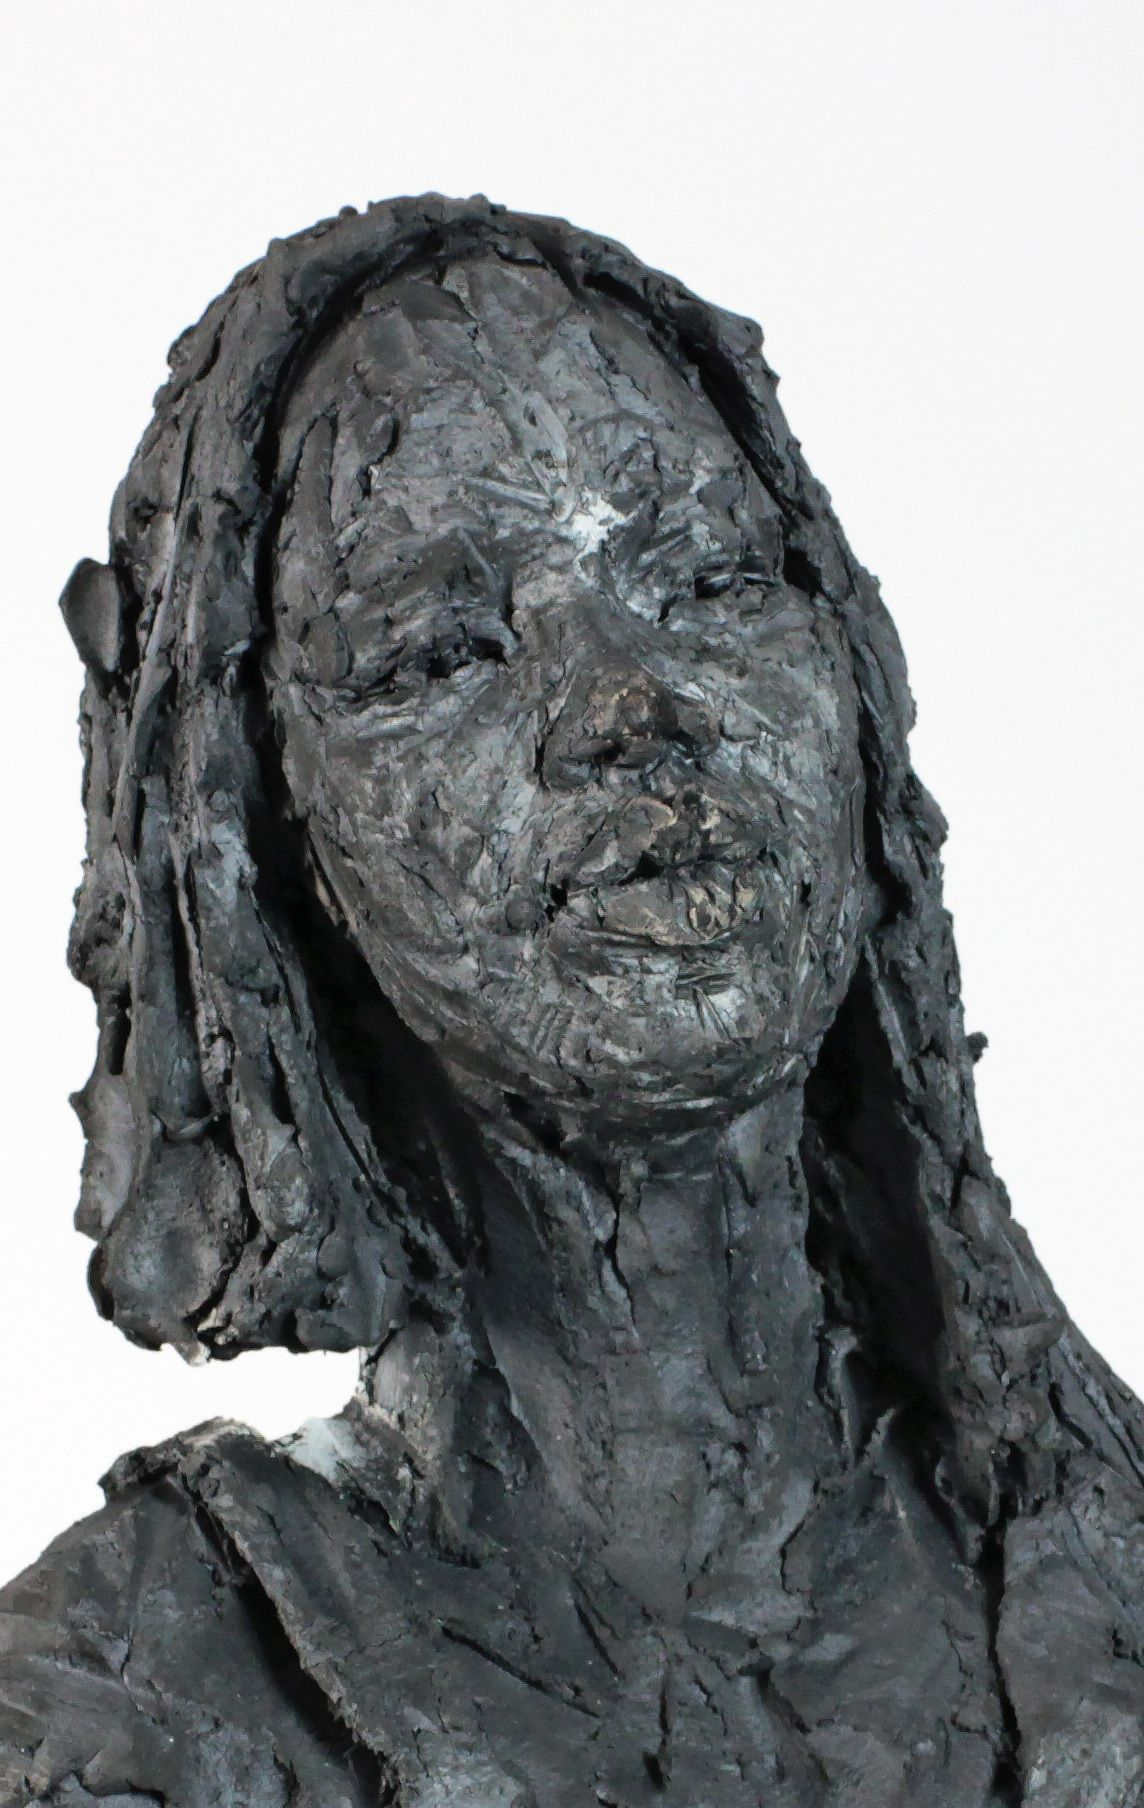 Solo (with Chloé),Cécile Raynal,Sculpture, detail 4